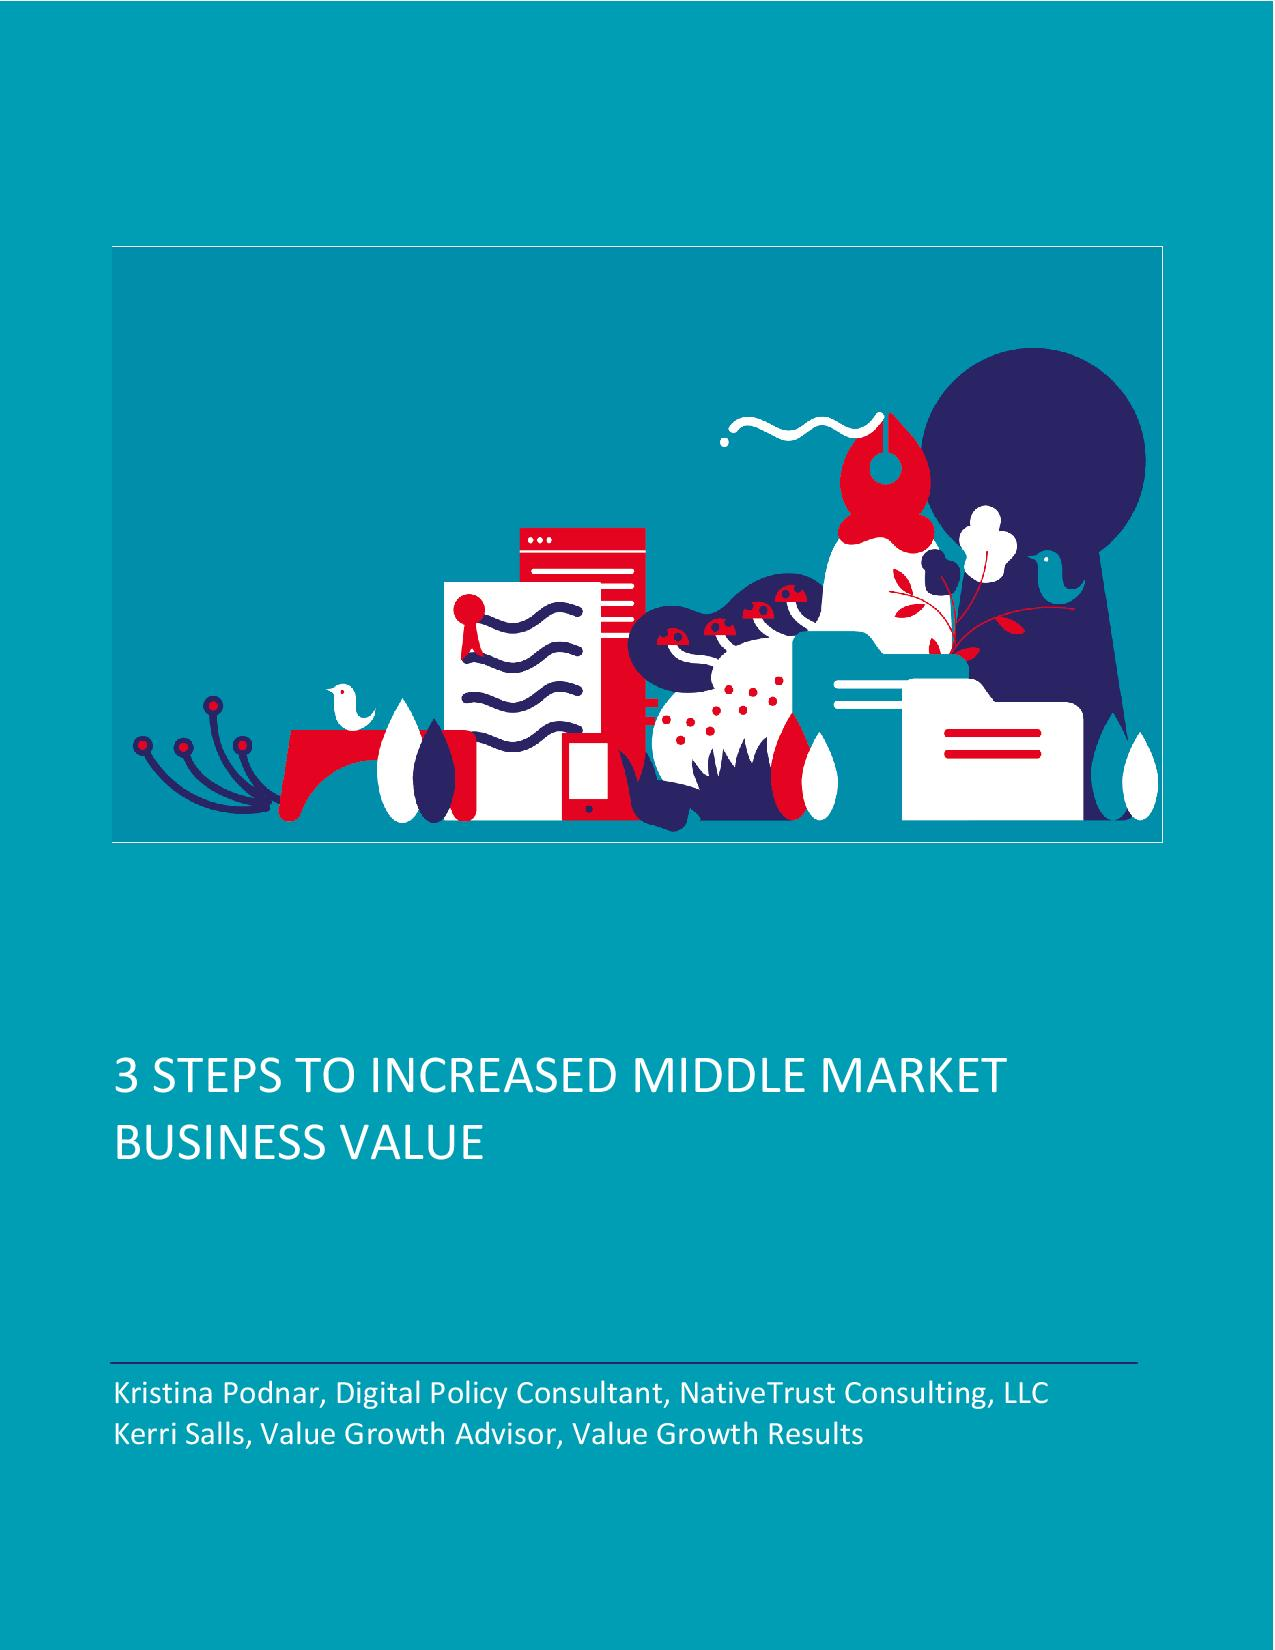 3 Steps to Increase Middle Market Business Value